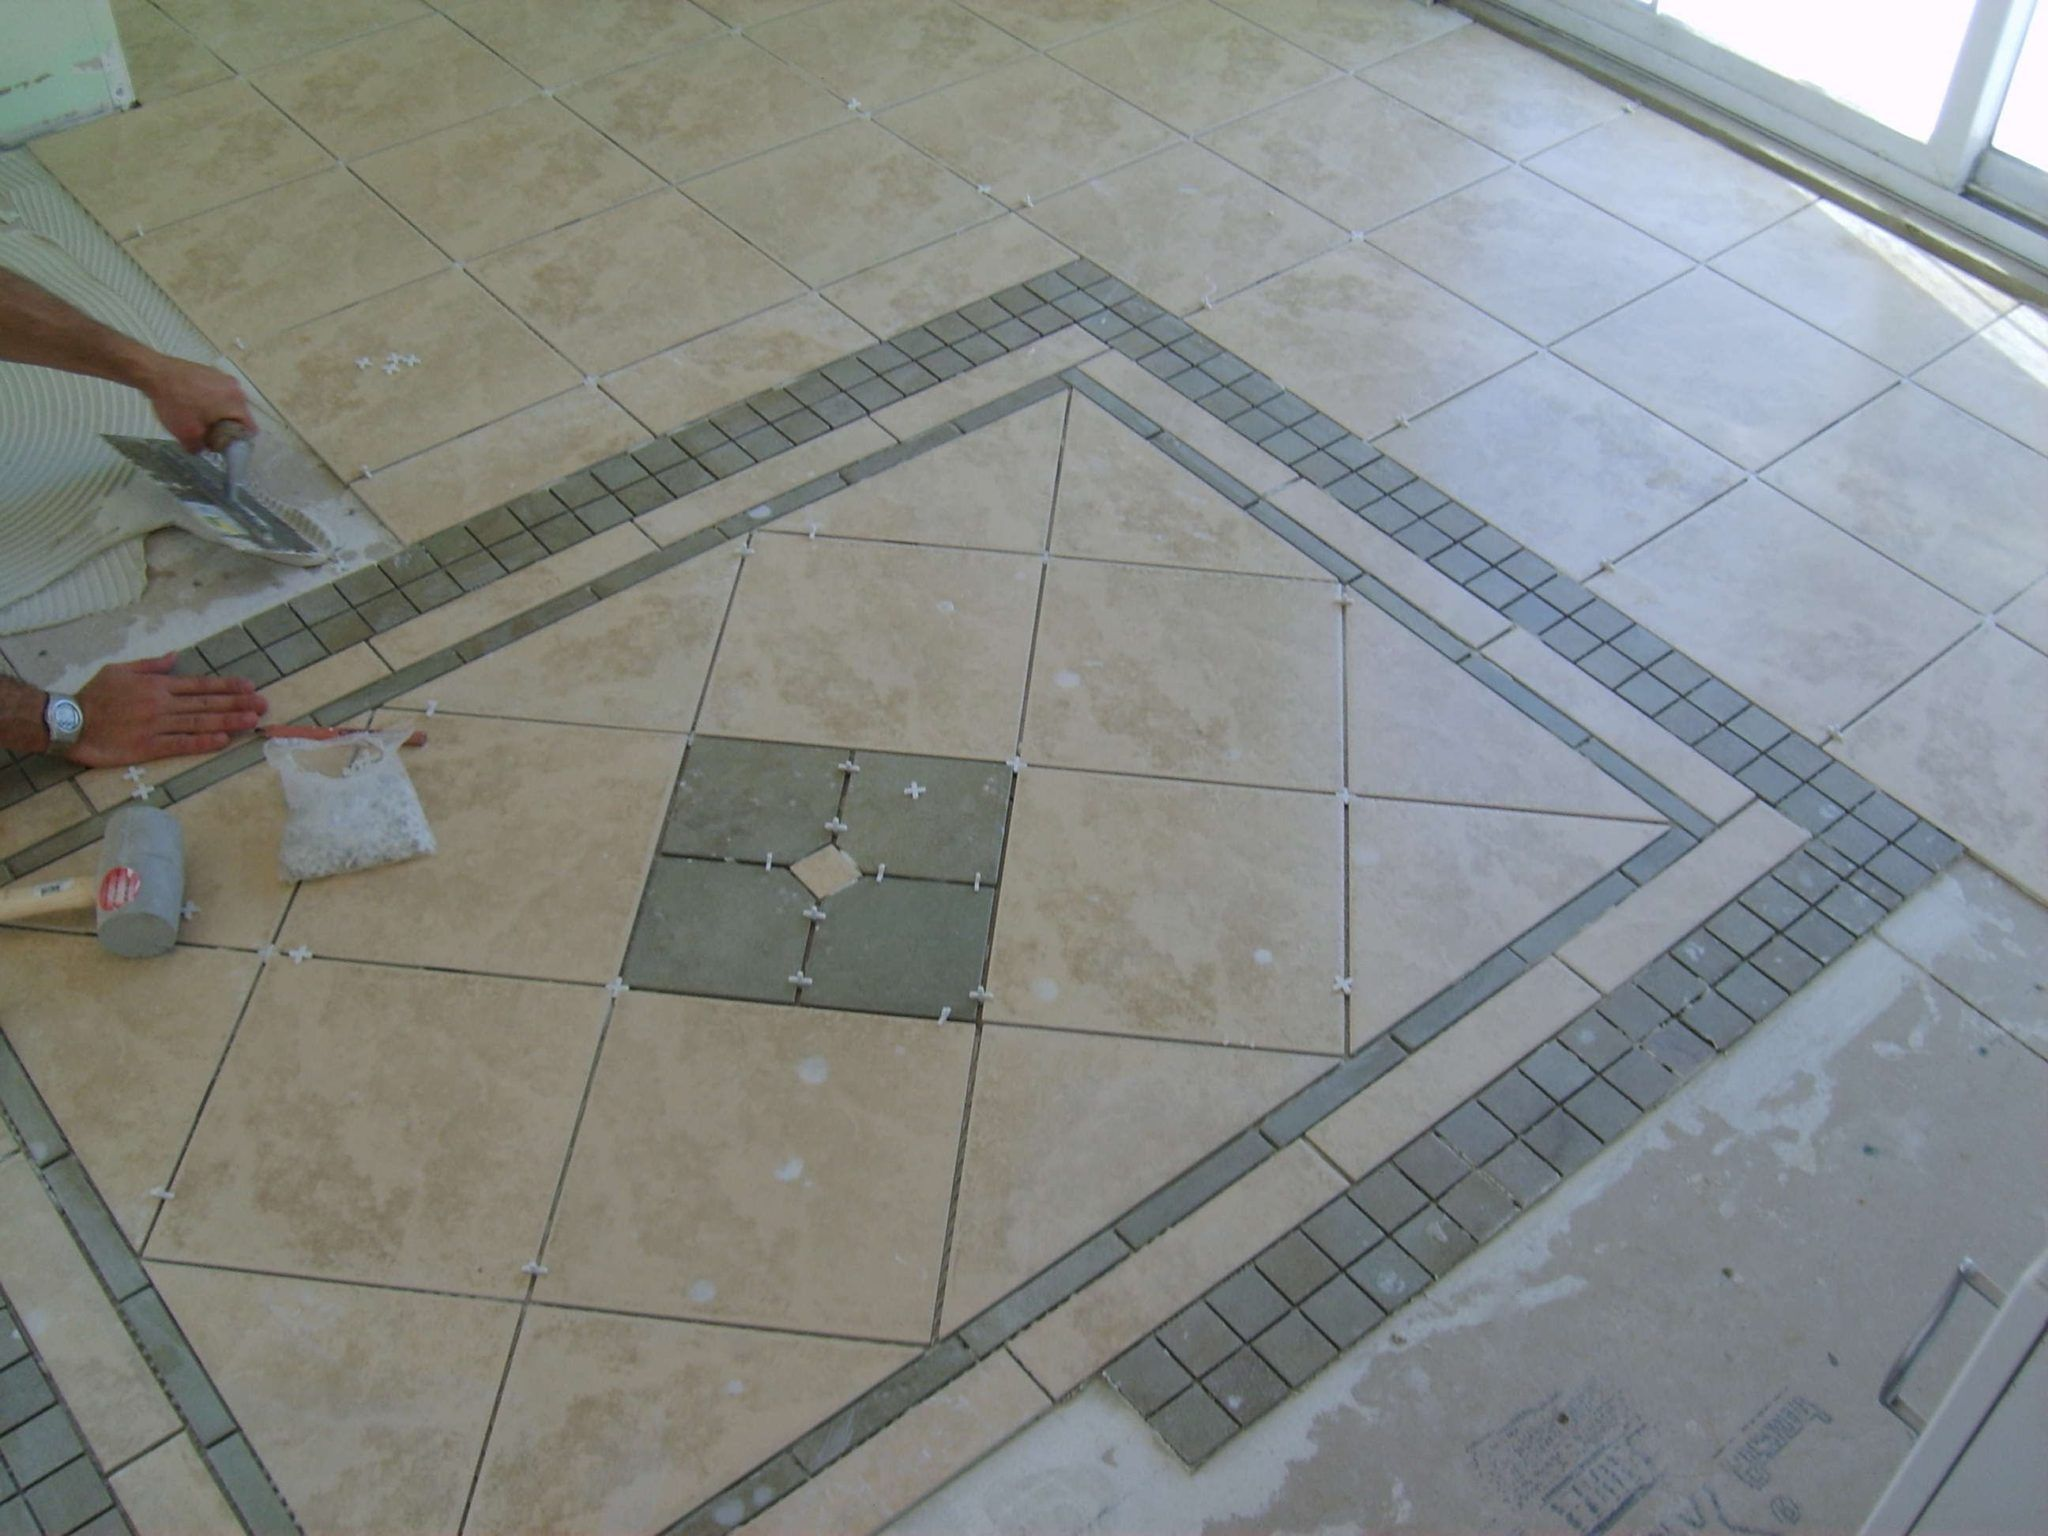 Kitchen floor tile design patterns kitchen floor tile design flooring kitchen floor designs with tile foyer design ideas small extraordinary kitchen floor tile design patterns dailygadgetfo Gallery